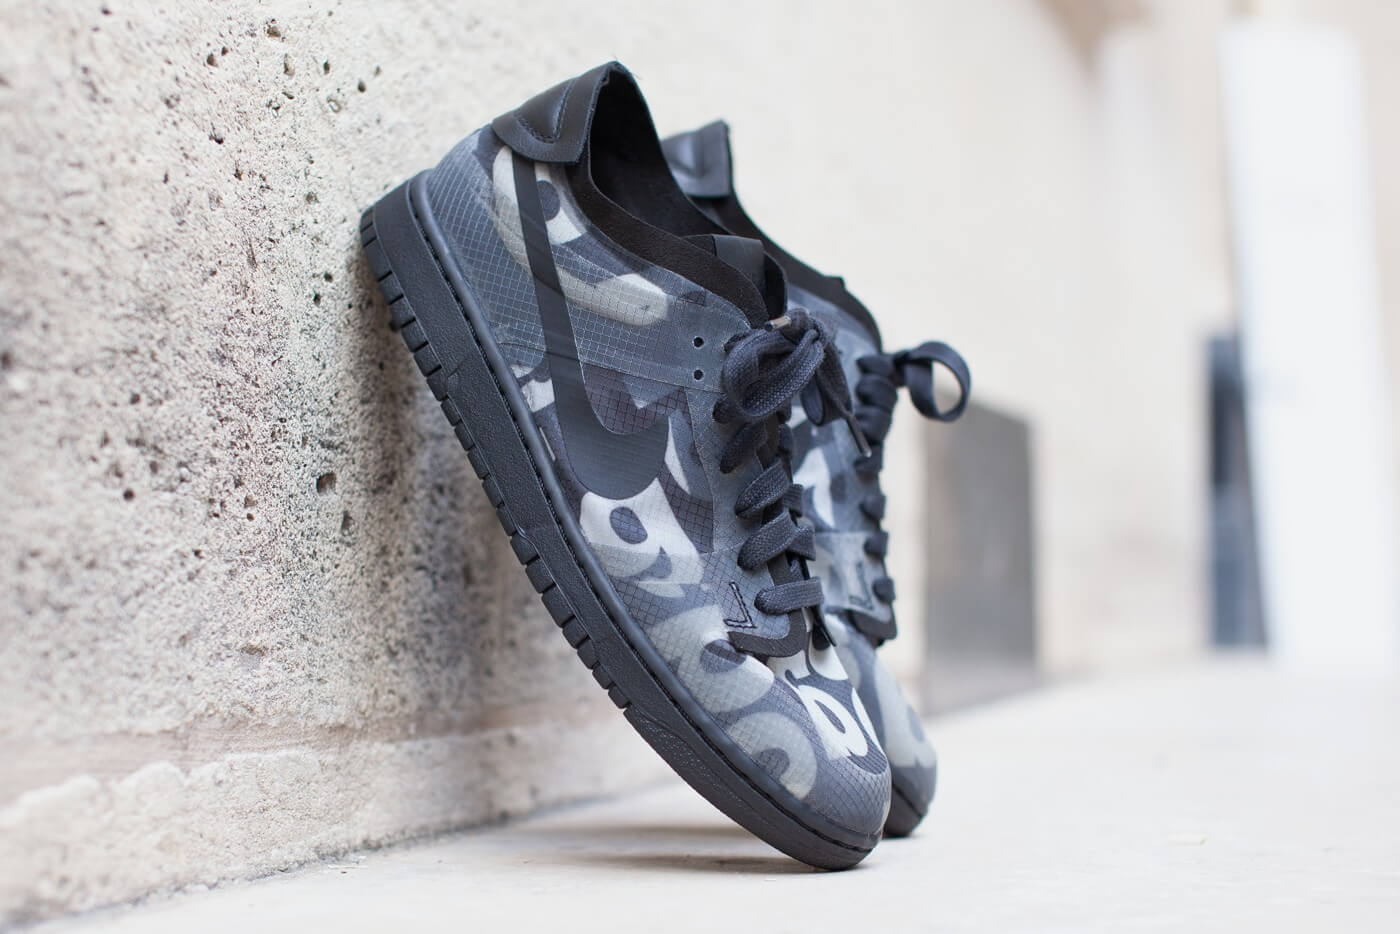 CDG goes hard with this Nike SB Dunks